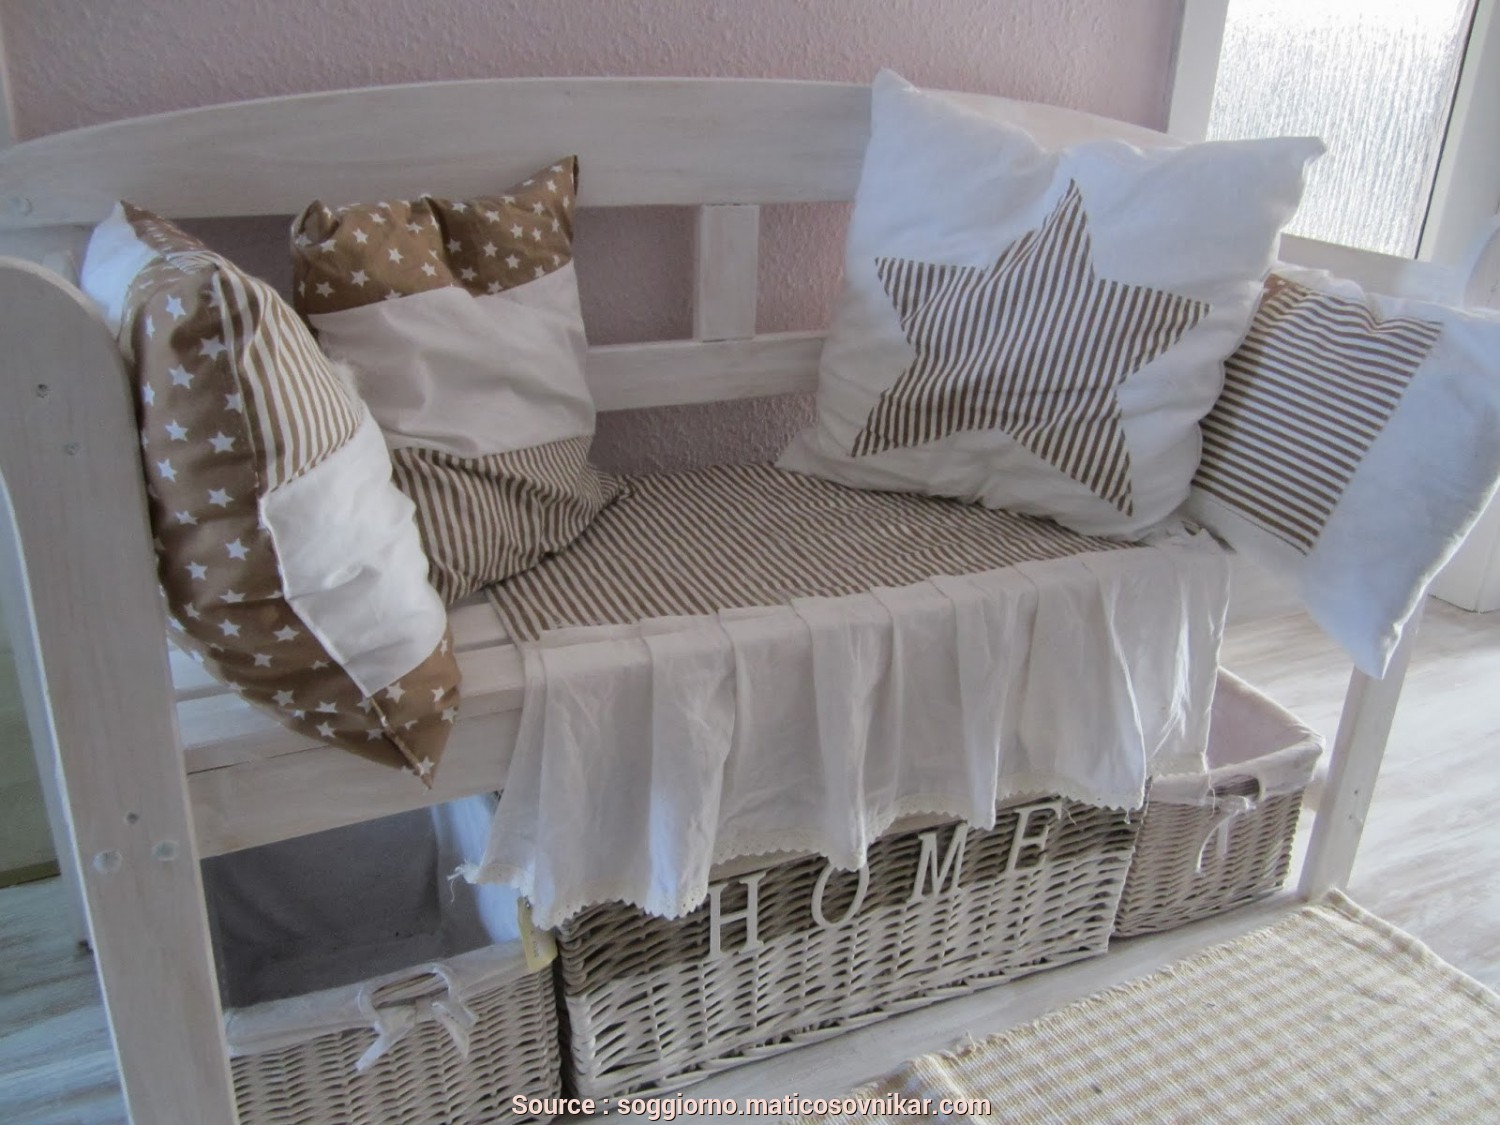 Amazon Cuscini Divano Shabby, Amabile Cuscini Divano Shabby Amazon, Tende Da Salotto Country Idee Per